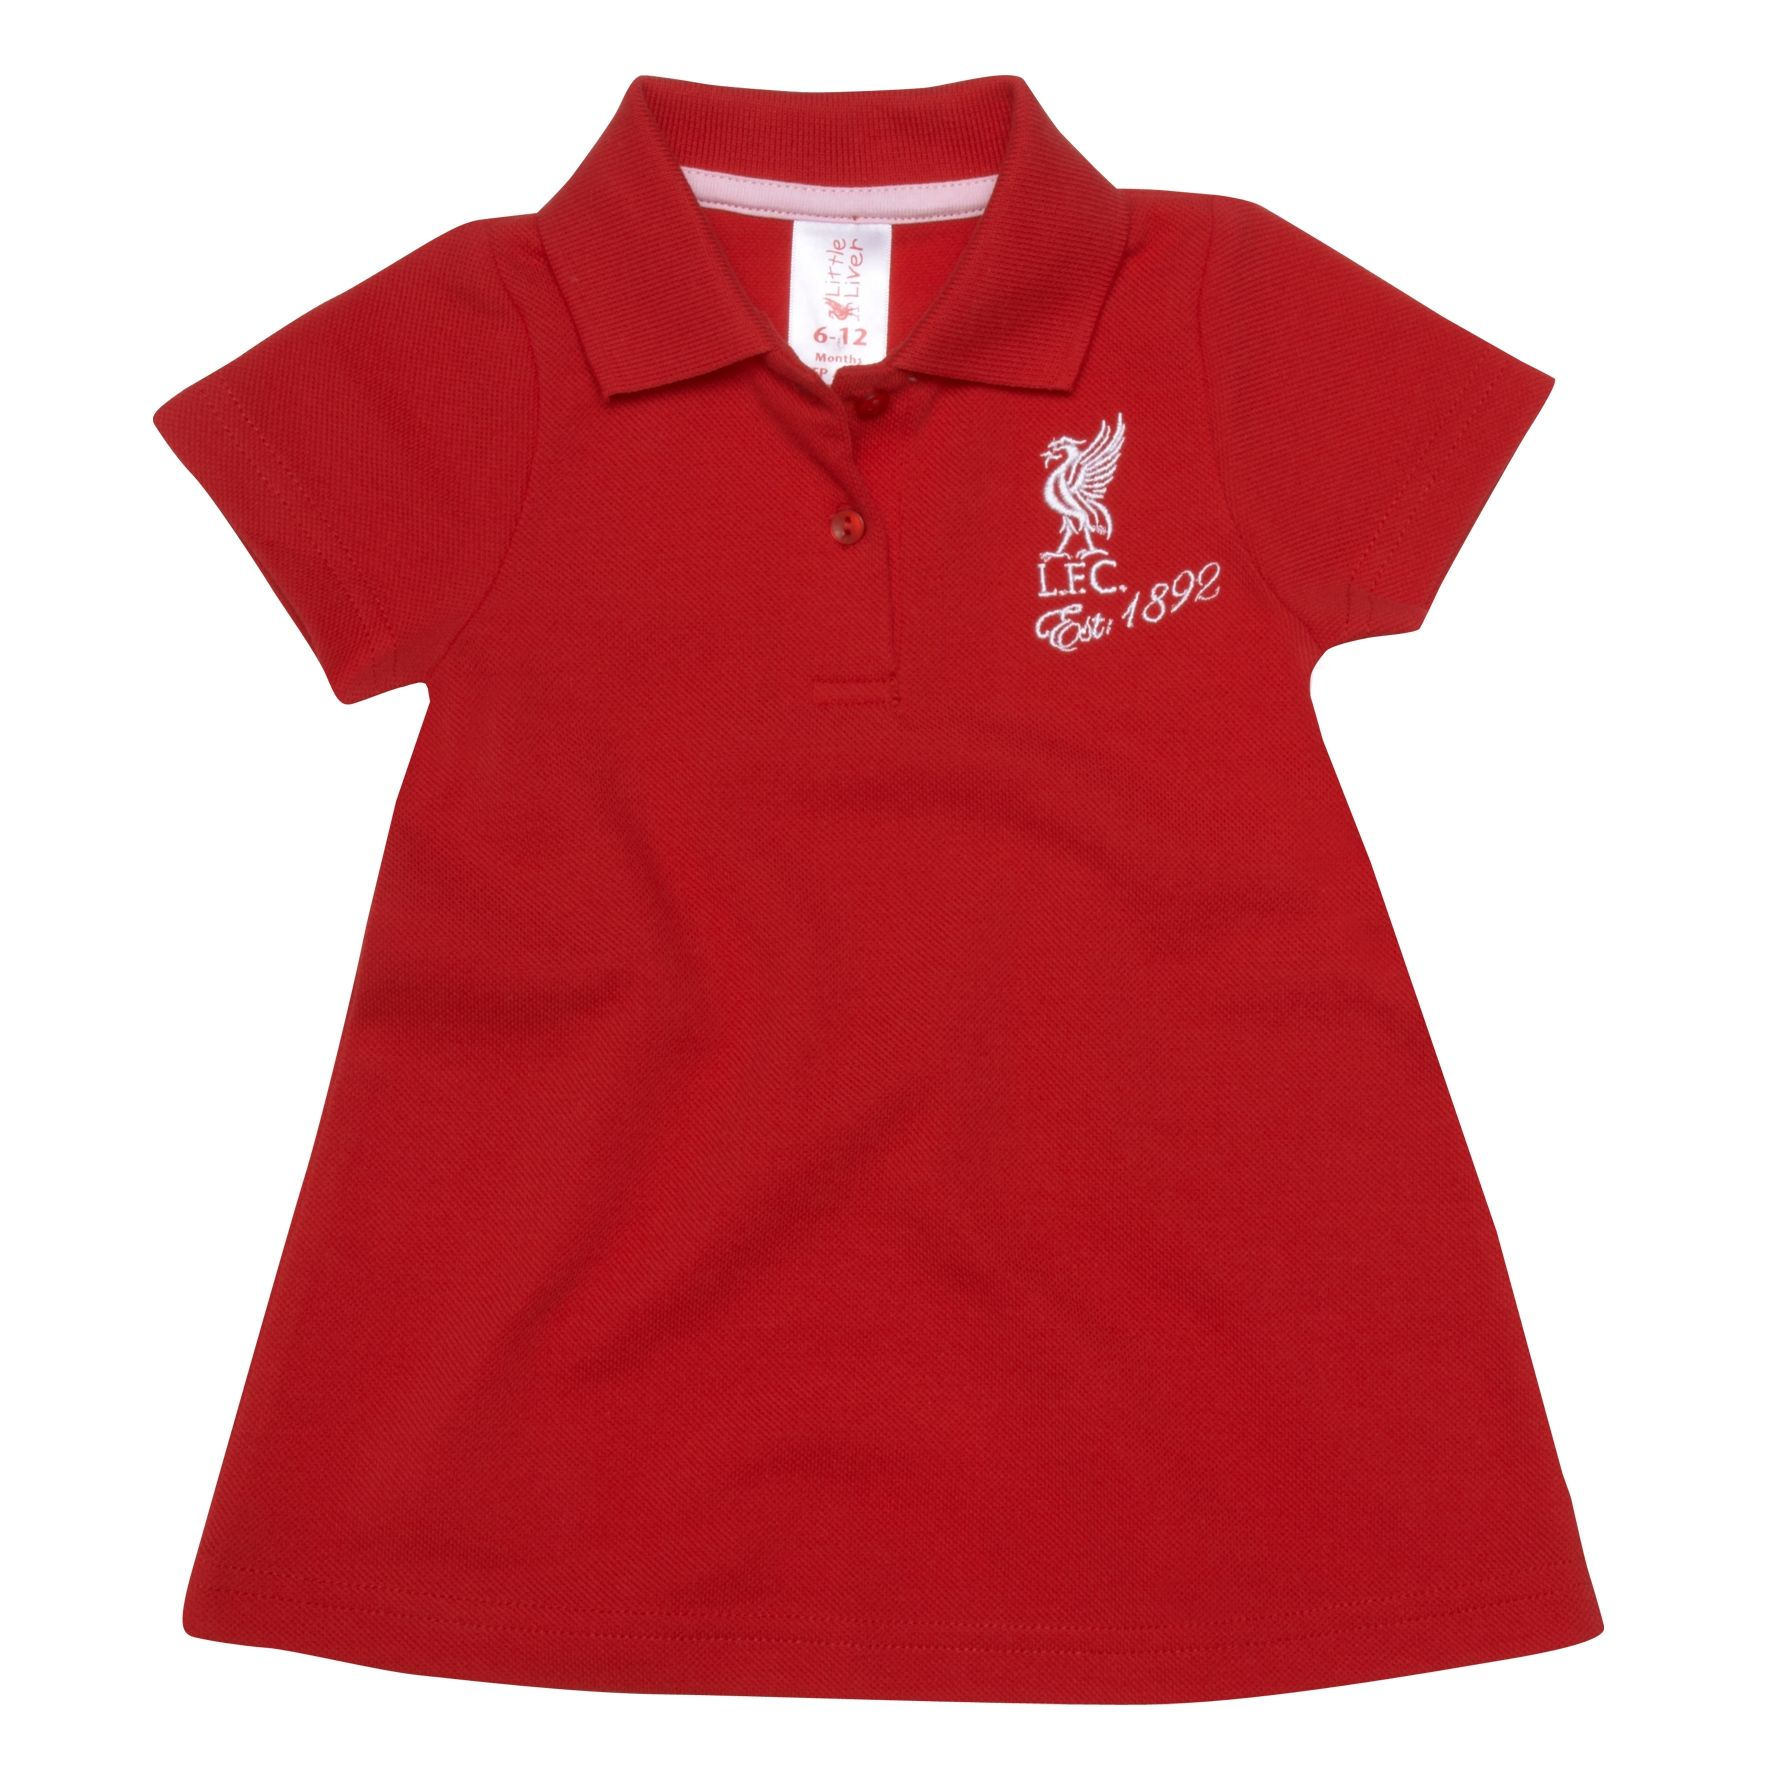 Baby cribs liverpool - Liverpool Fc Baby Dress